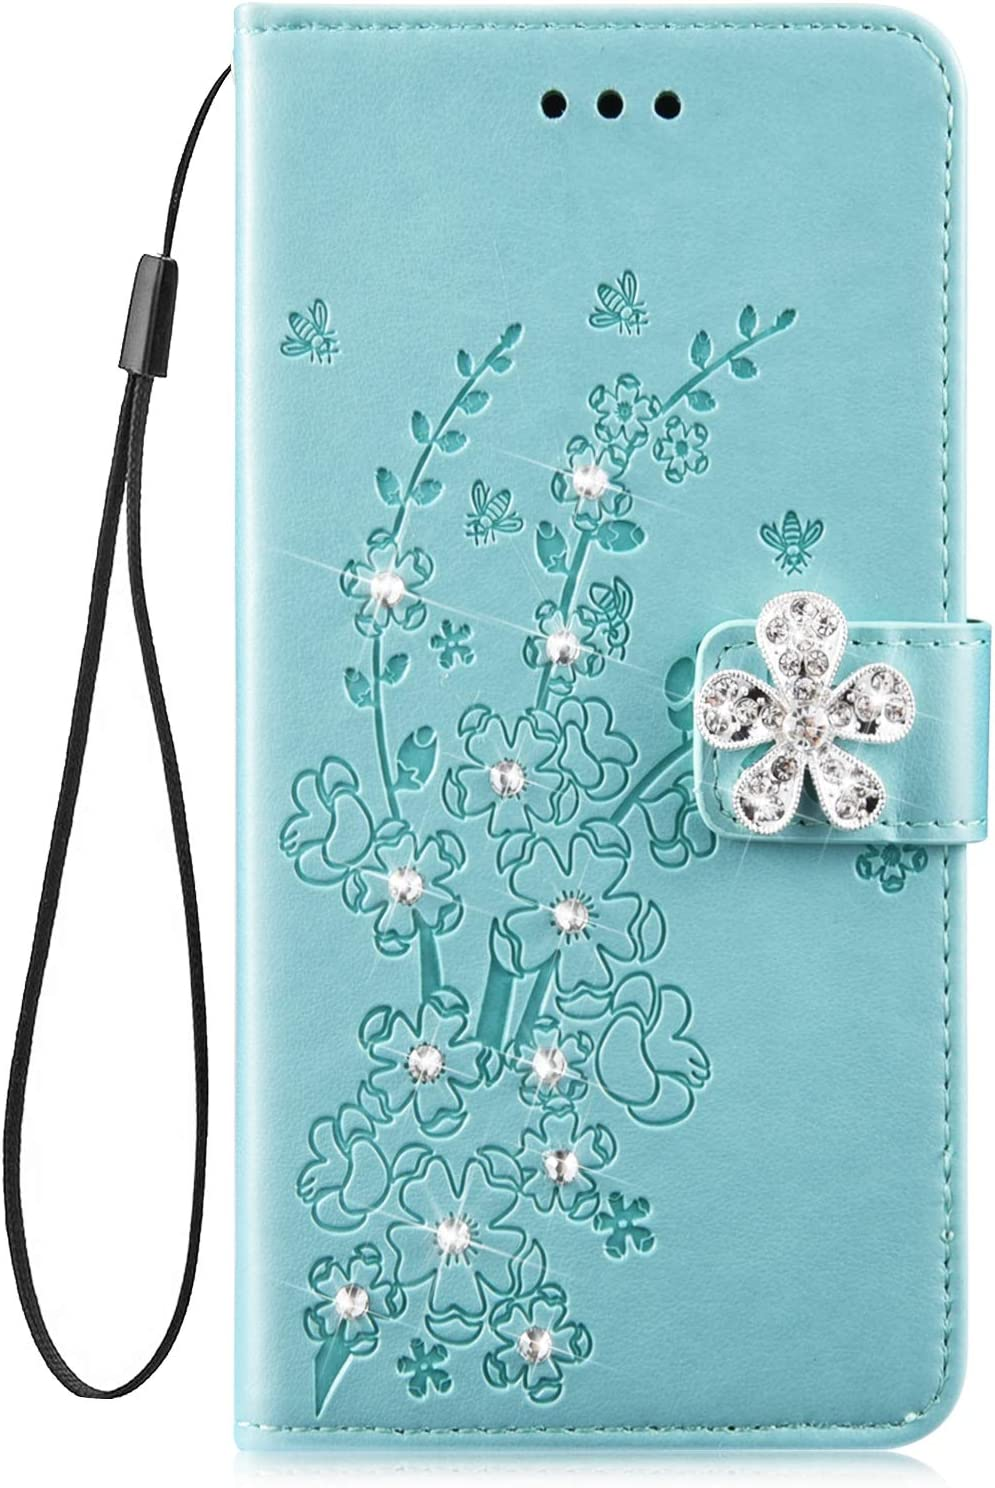 Herbests Compatible with Samsung Galaxy M30 Wallet Case Glitter Diamond Bling Rhinestone Leather Cover Flip Cases 3D Flower Butterfly Embossed Cute Slim Shockproof Phone Cover Stand,Rose Gold